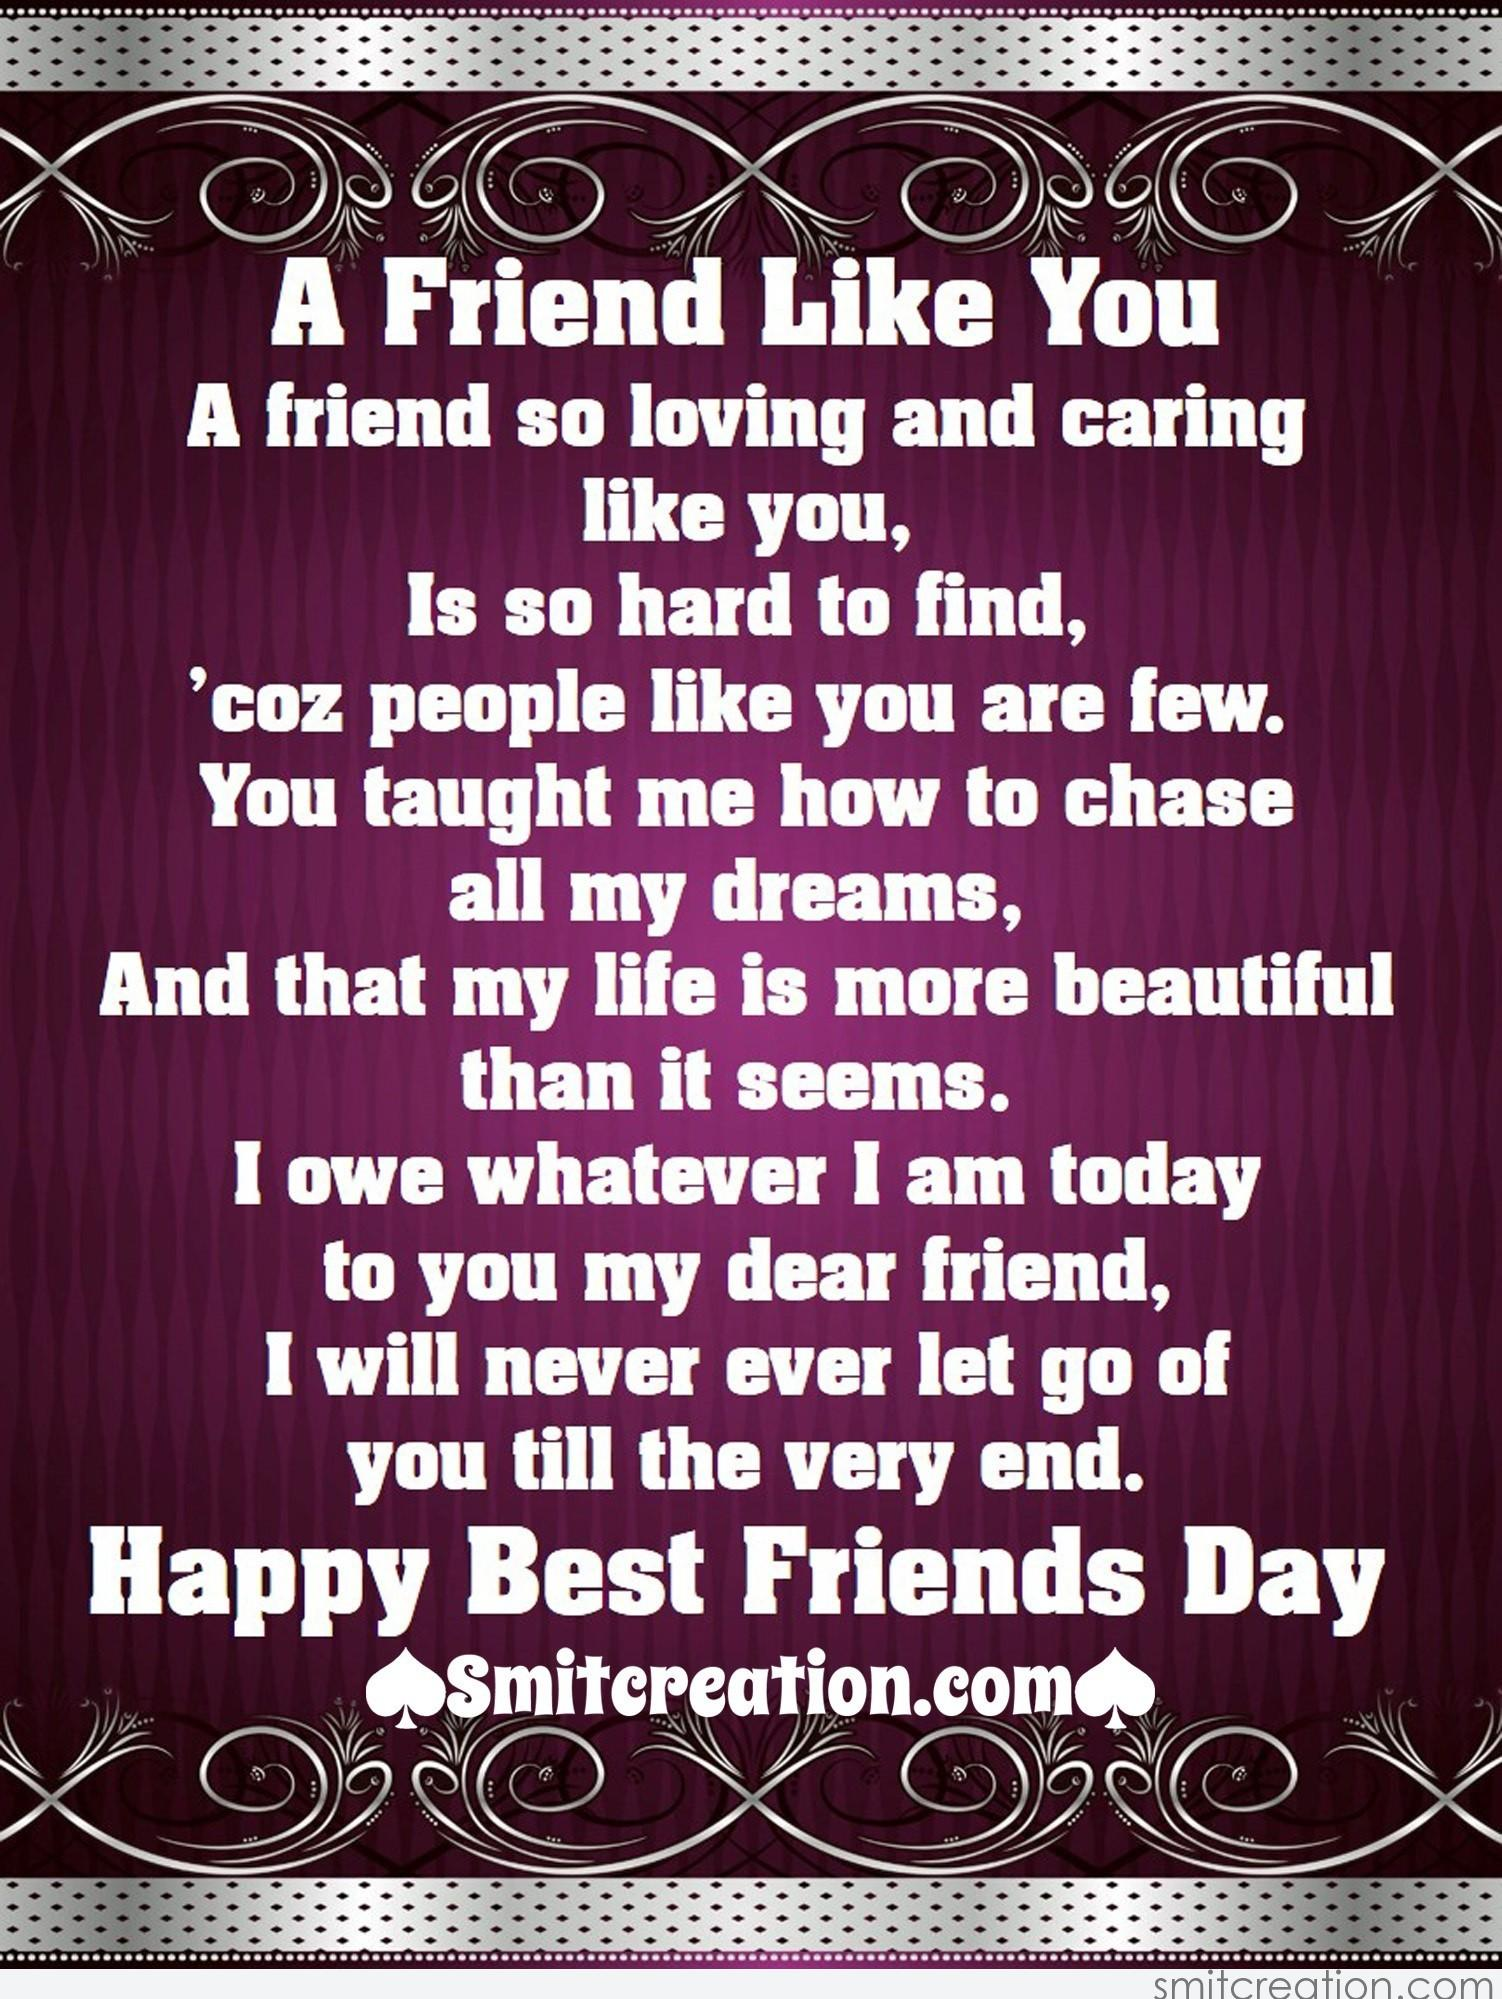 So friend my you are beautiful Am I